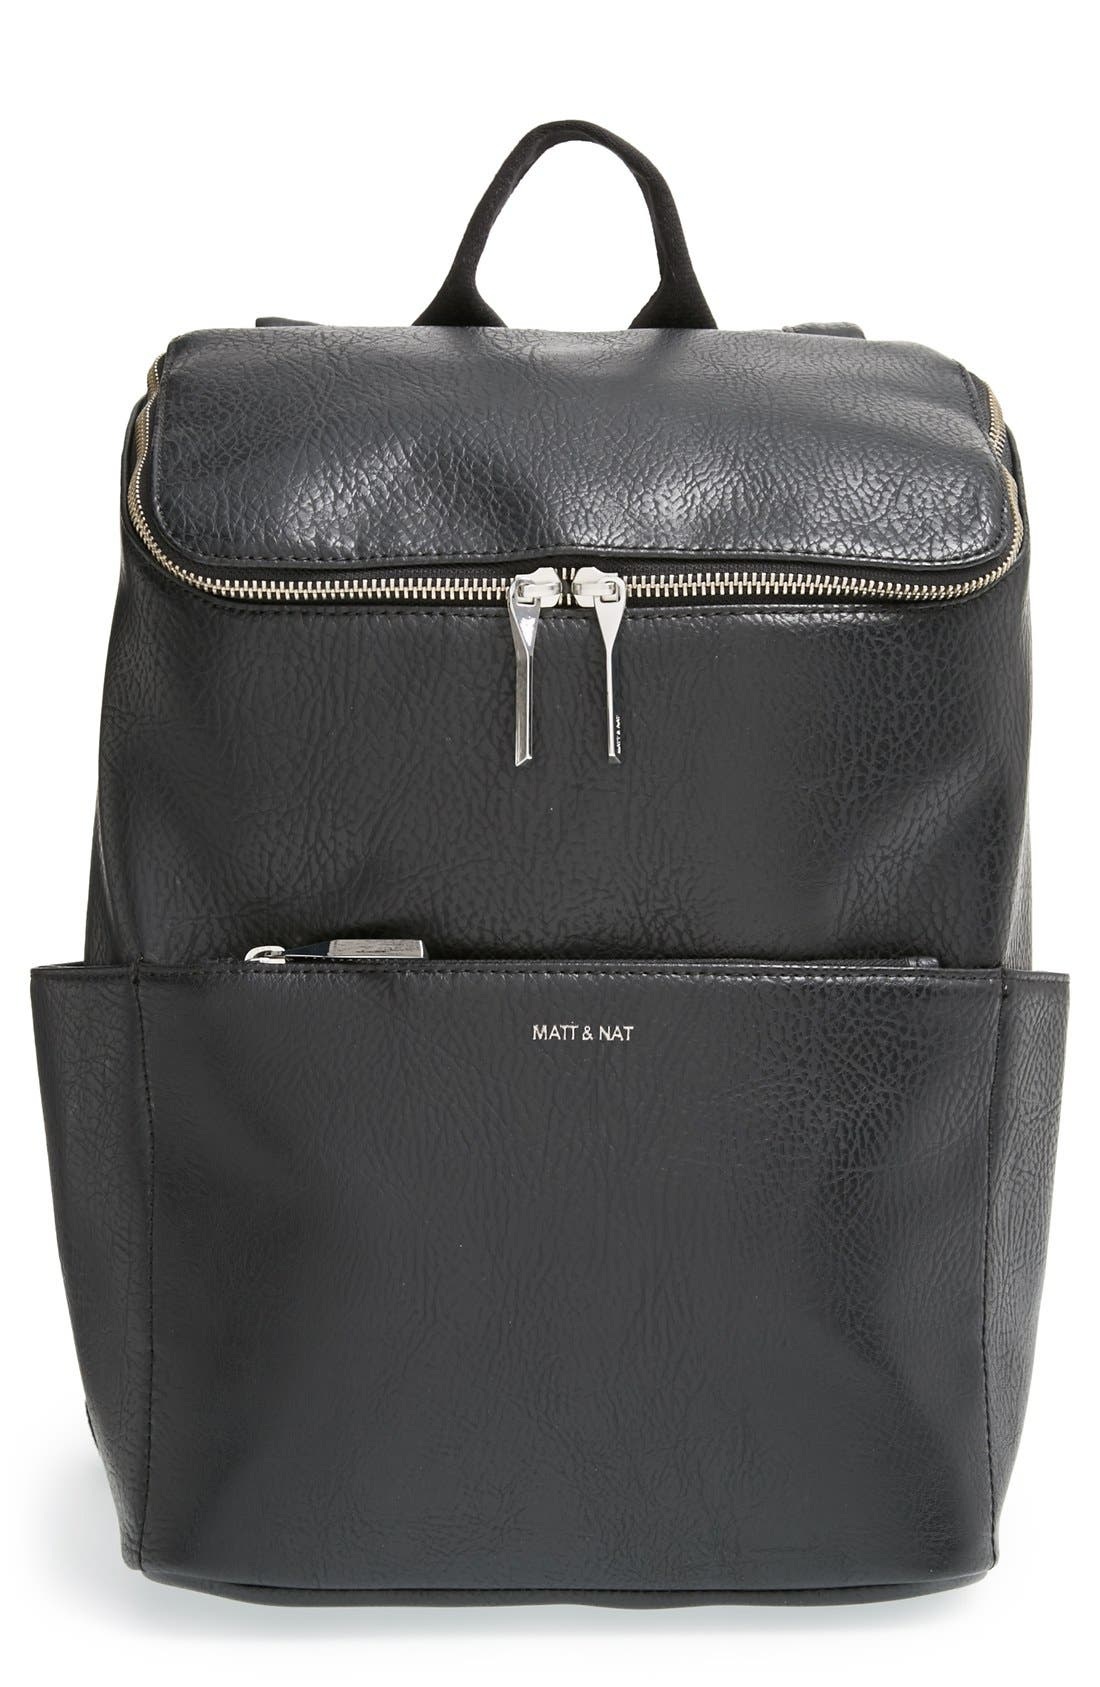 Matt & Nat 'Brave' Faux Leather Backpack | Nordstrom